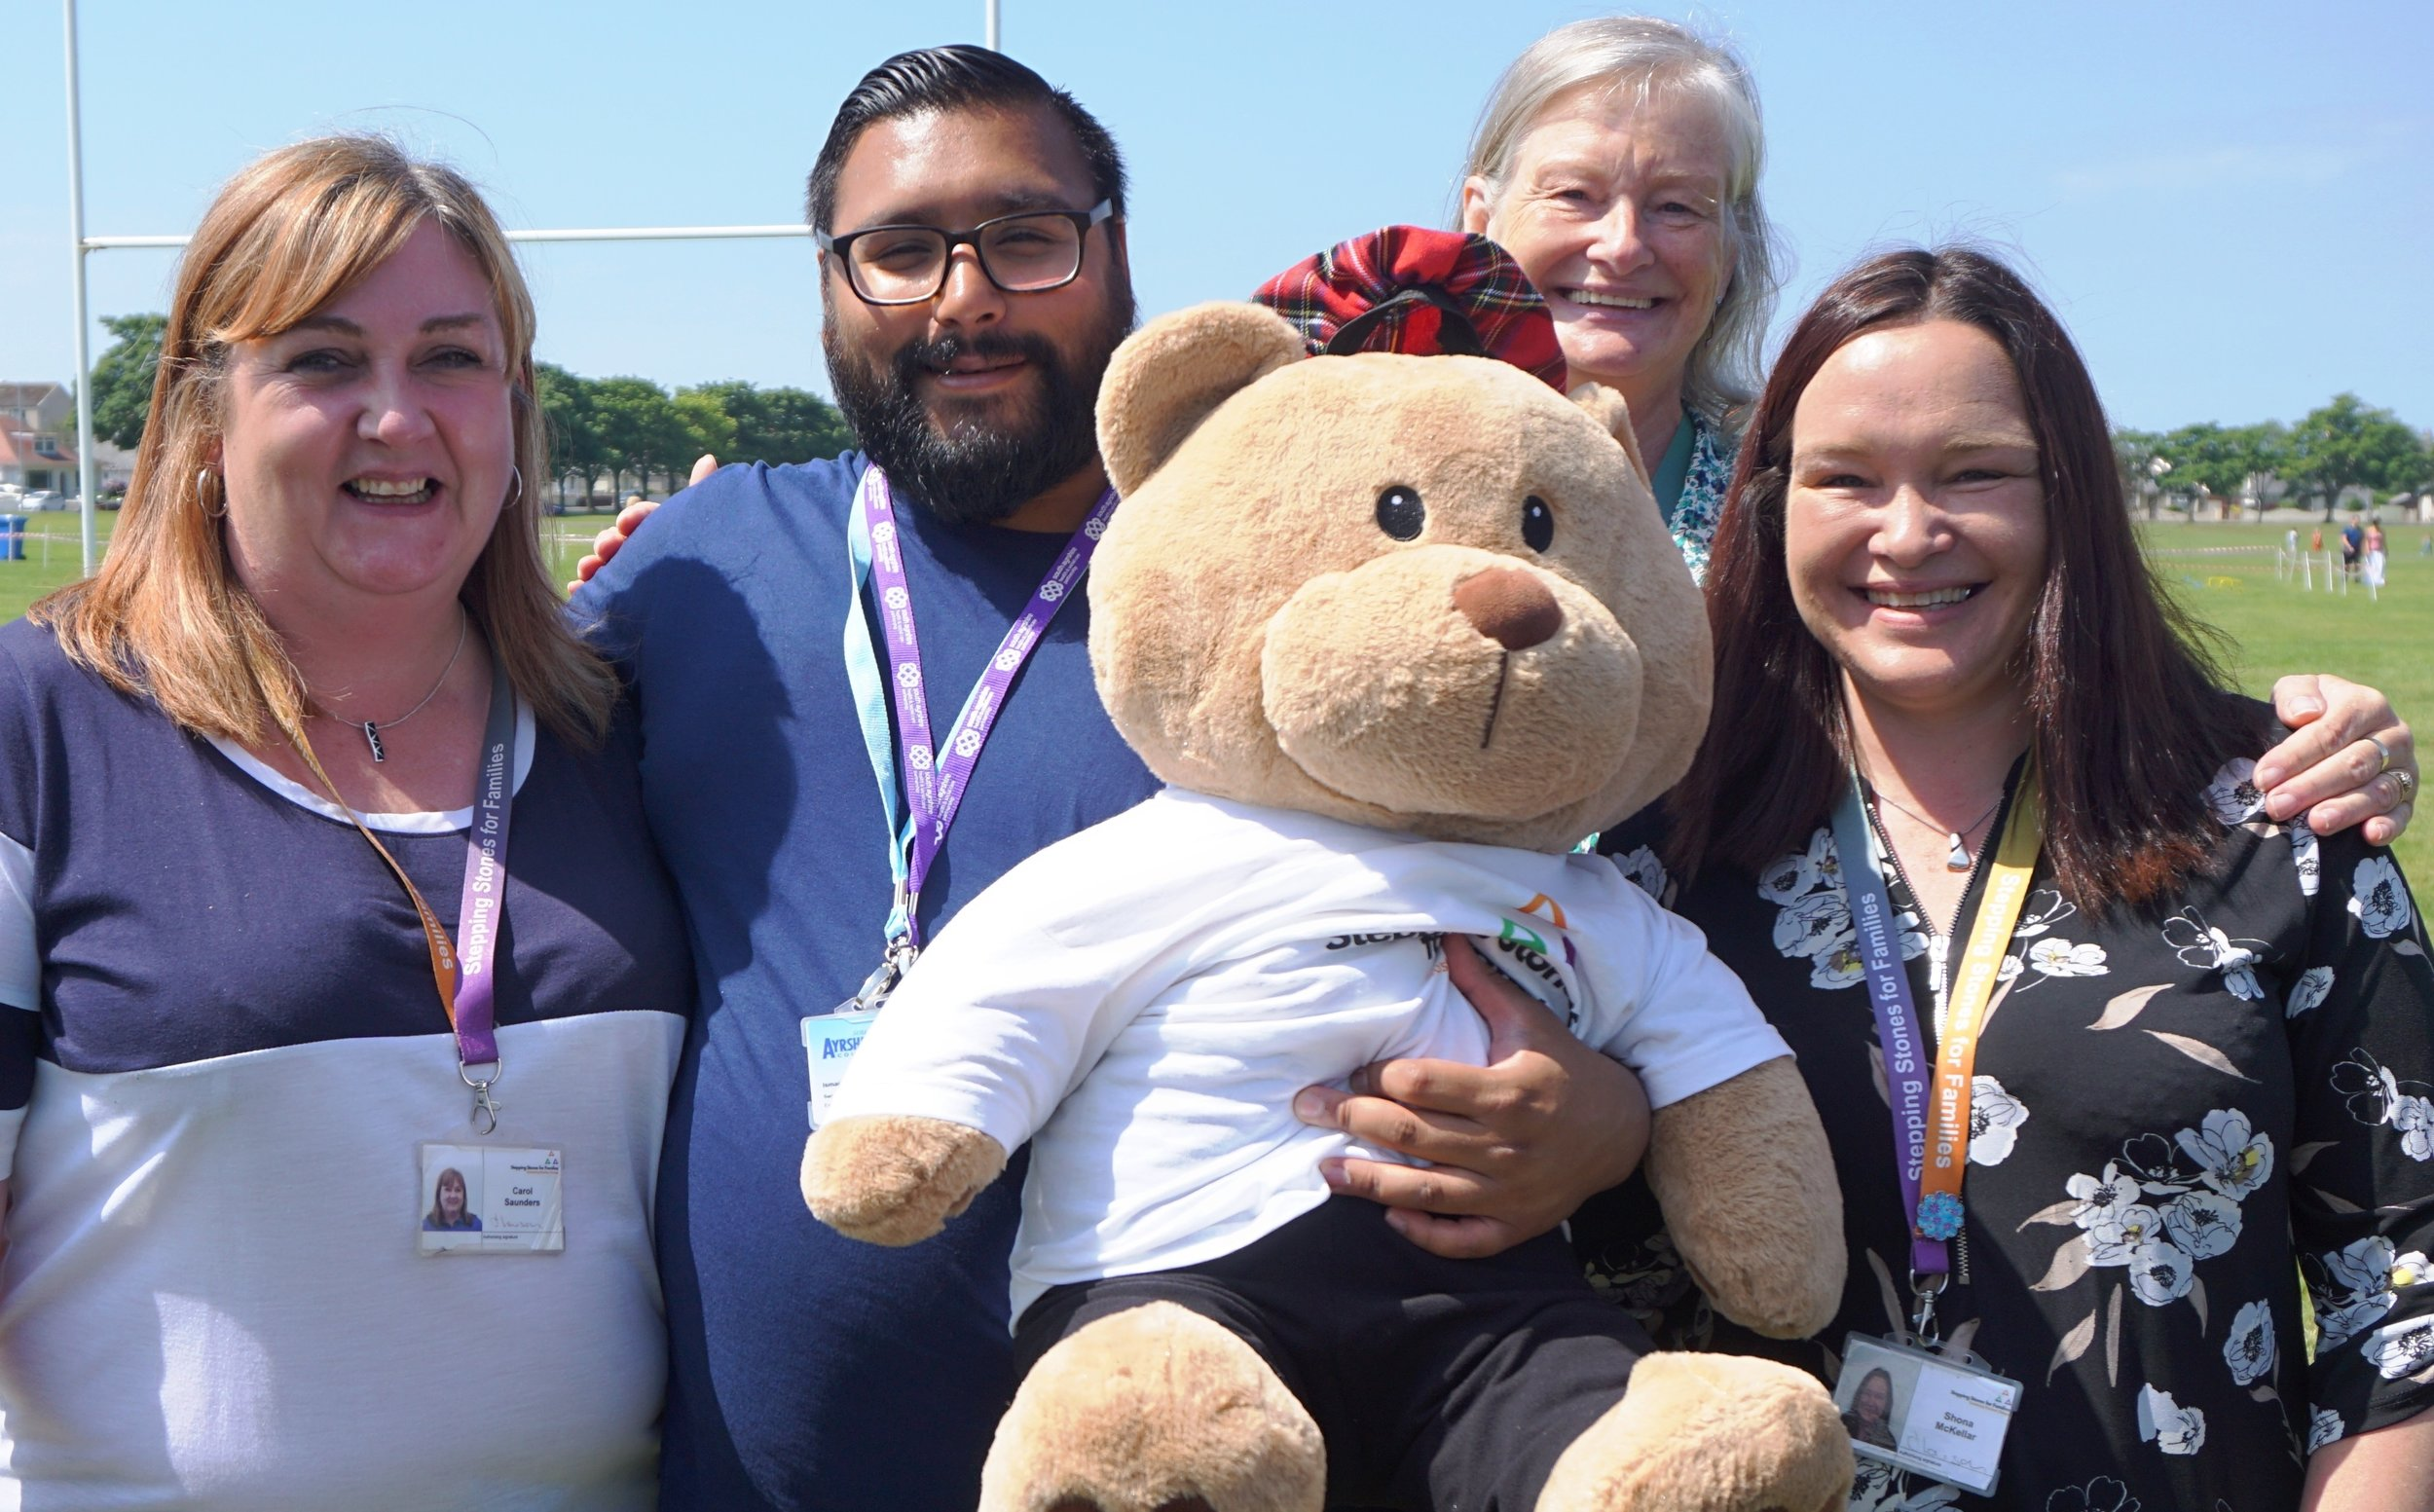 Stepping Stones for Families CMAS team, introducing Hamish the bear our 30th Anniversary mascot to Isaac, South Ayrshire Council.